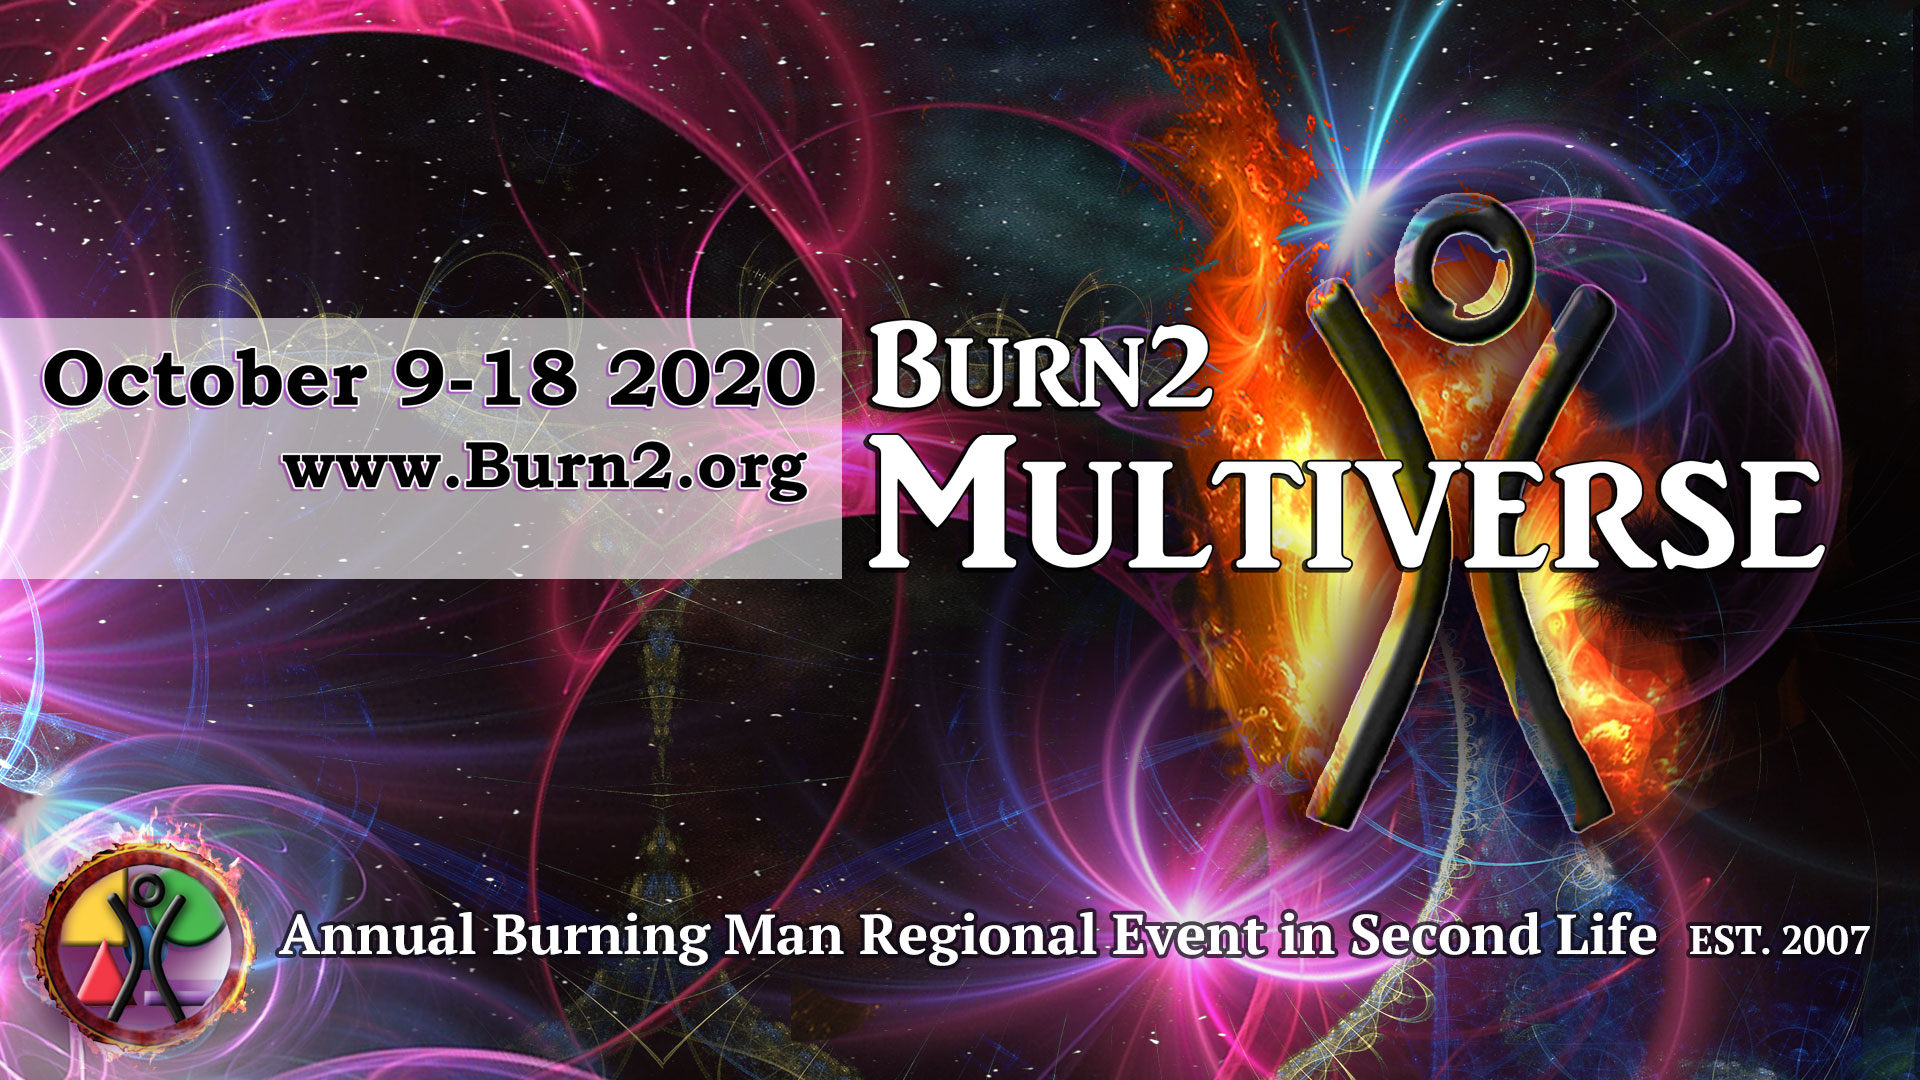 Burn2 The Multiverse 2020